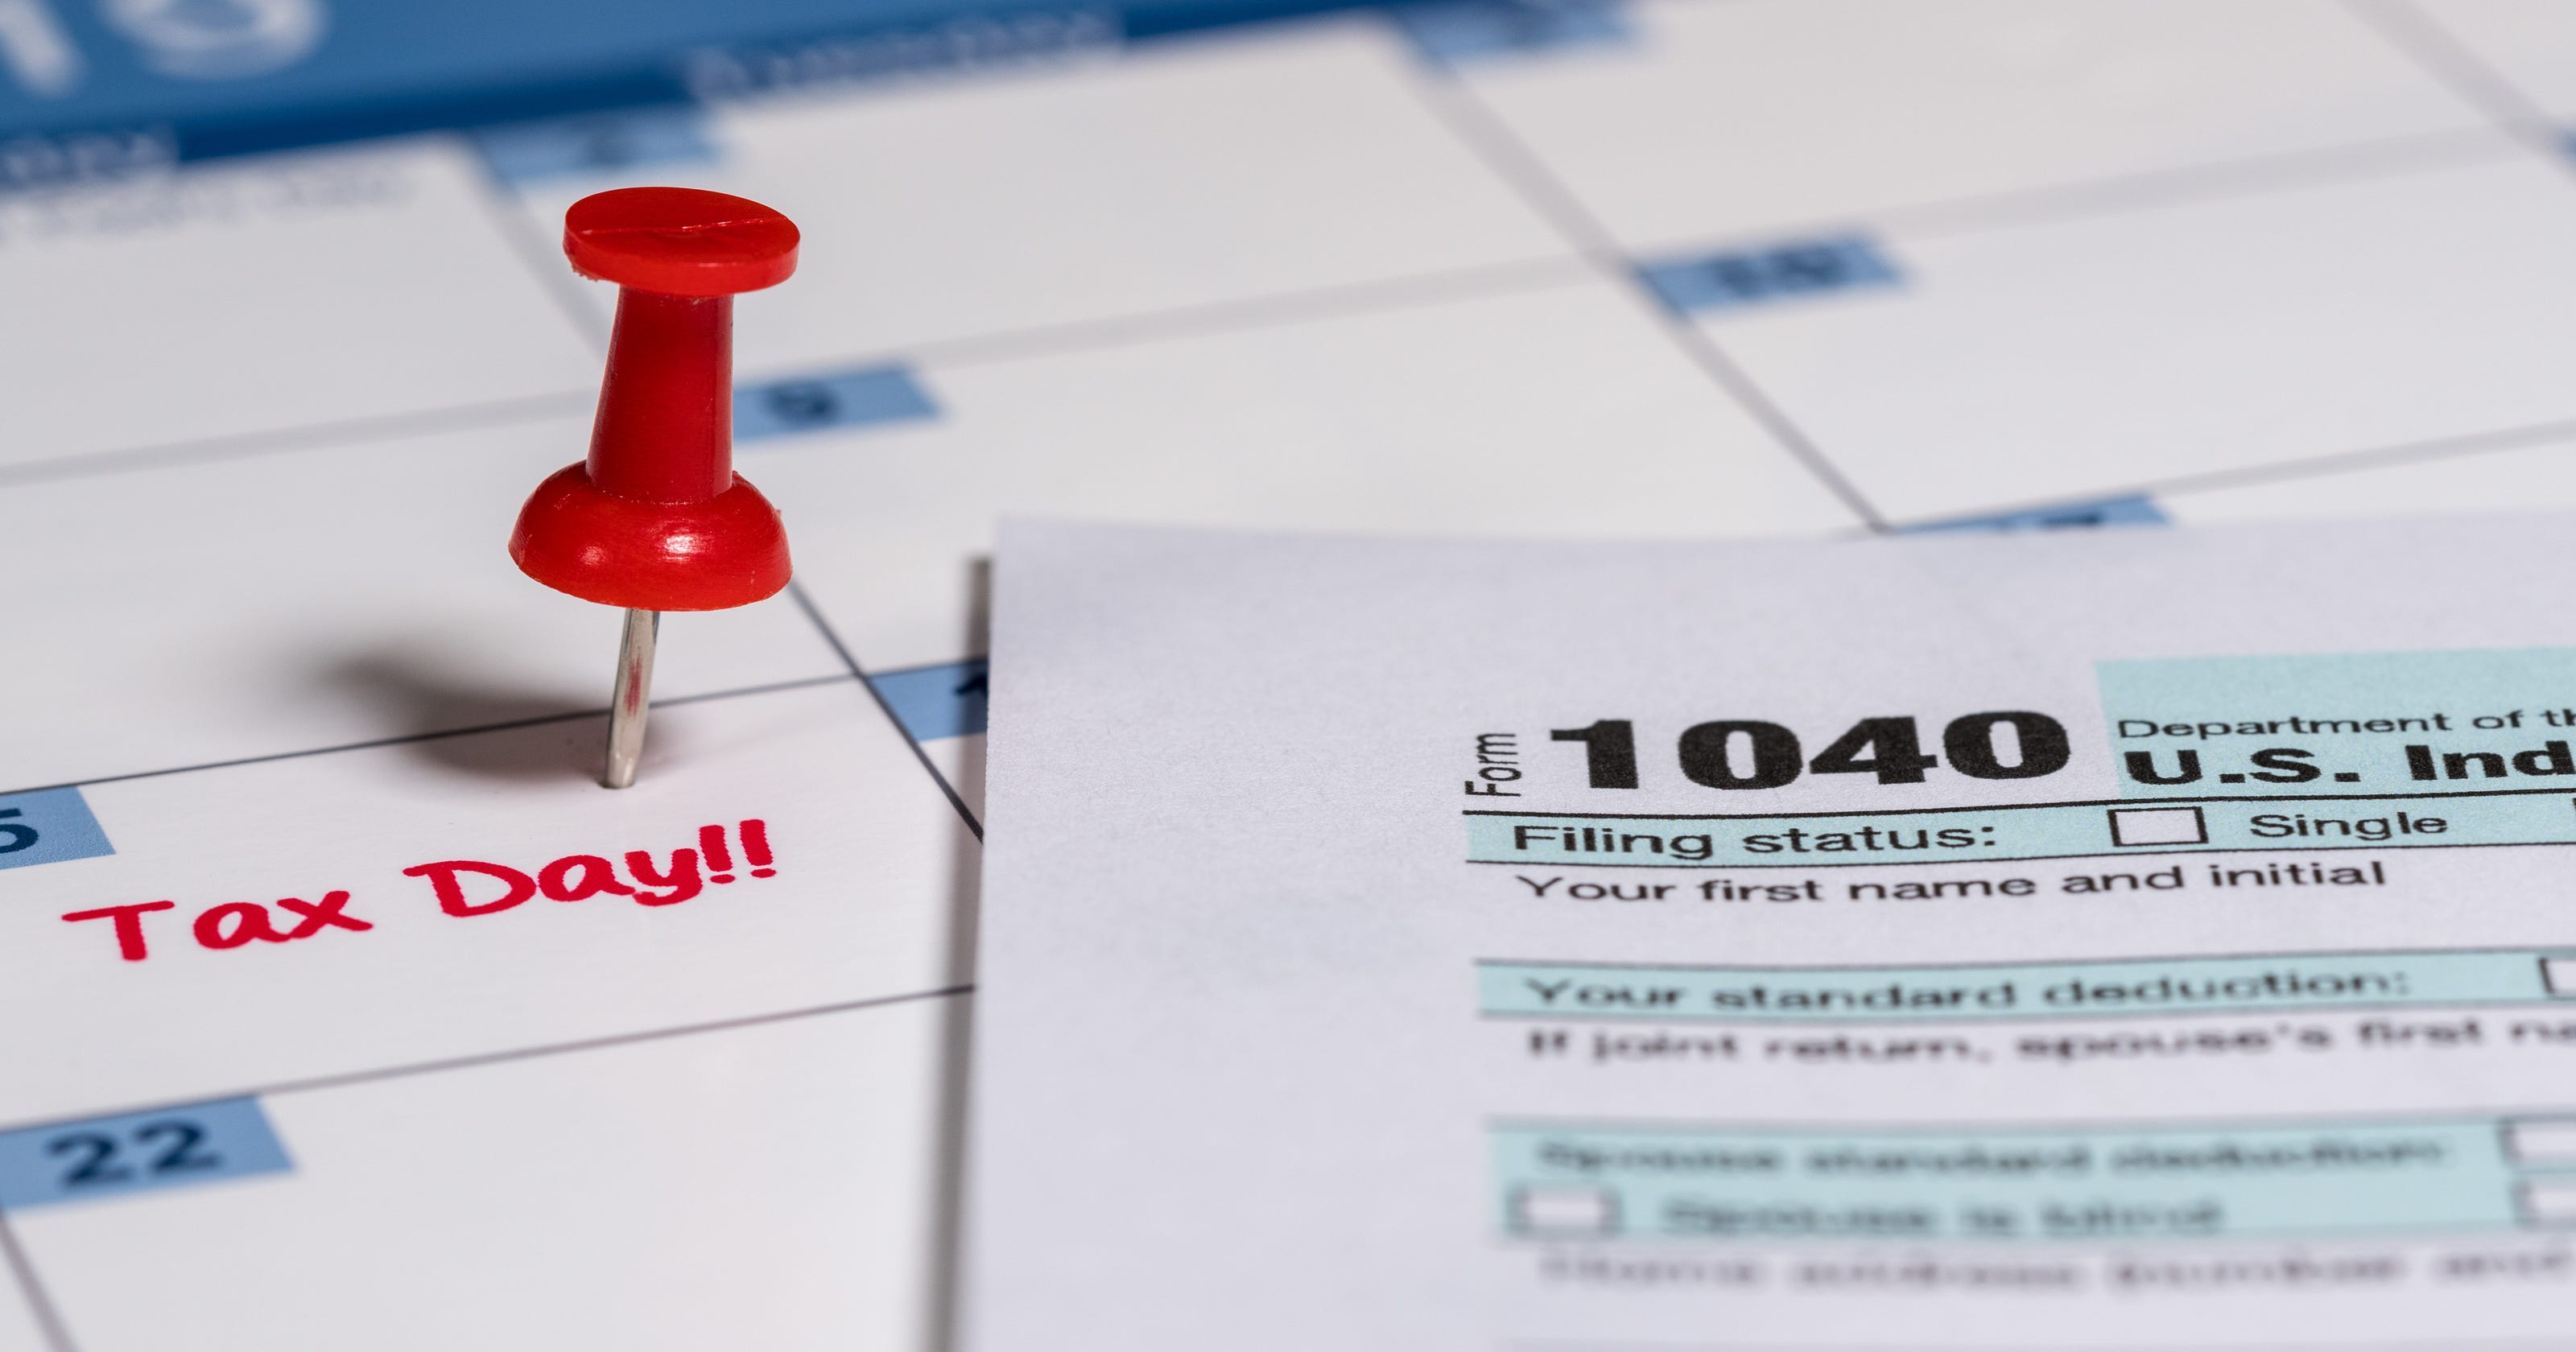 Where to mail tax return: IRS mailing addresses for each state